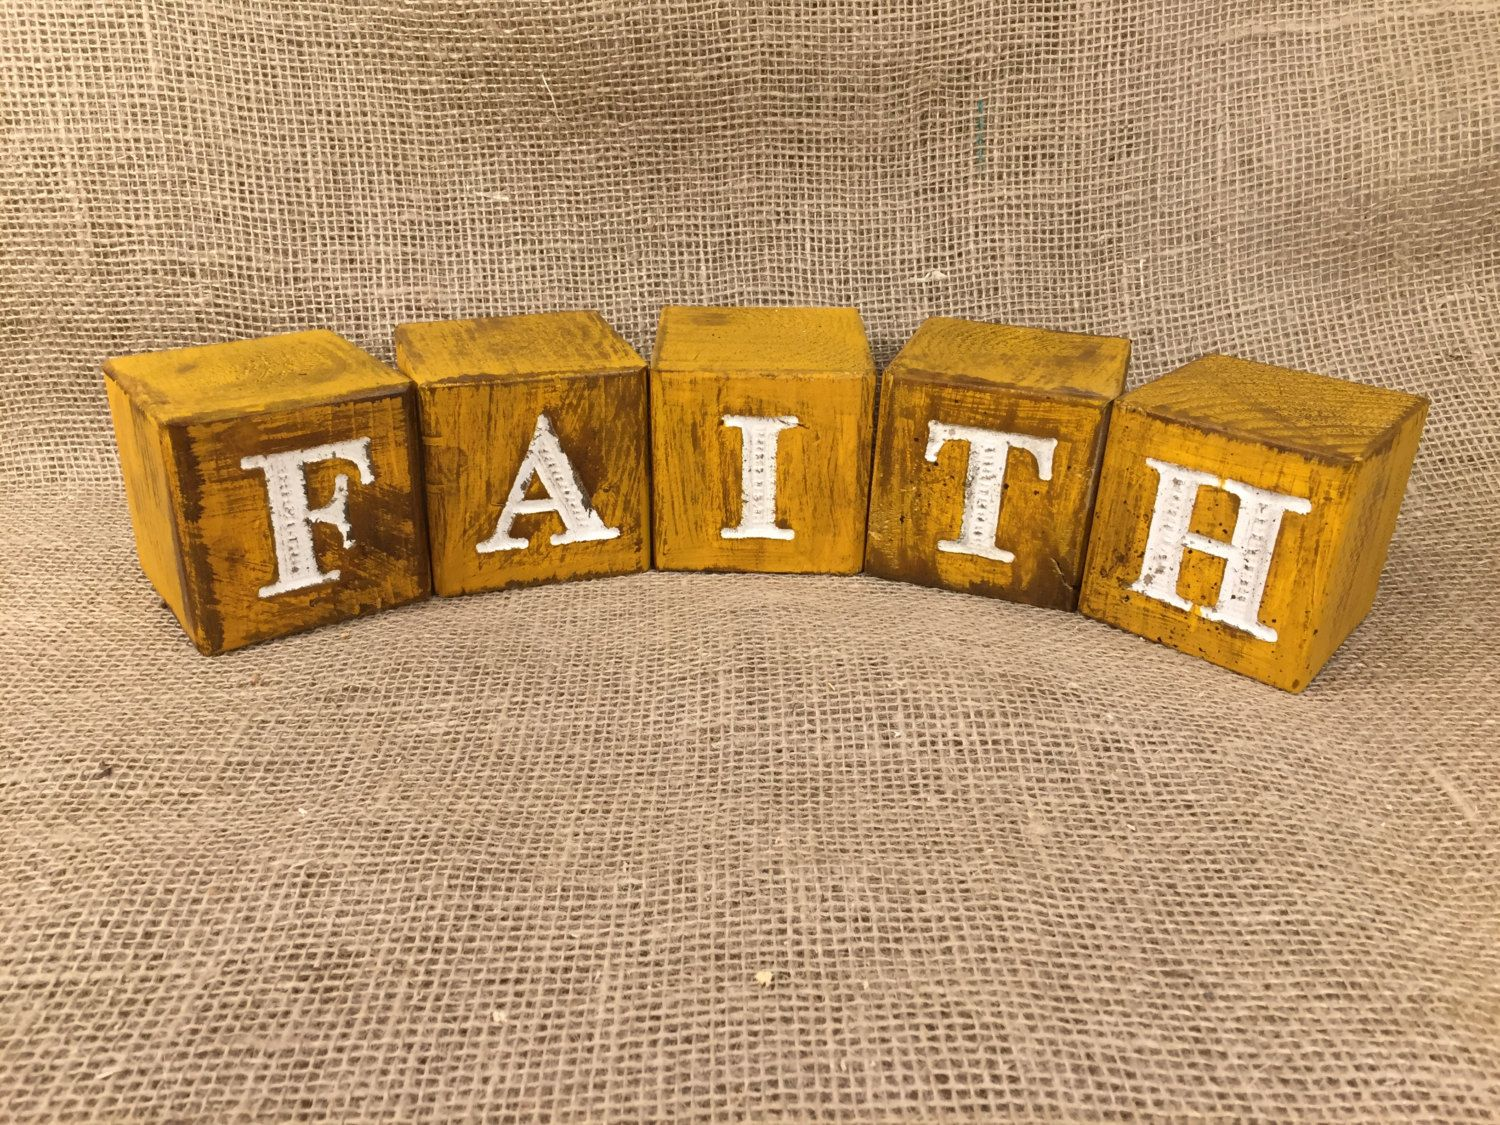 Rustic Wood Blocks Engraved With FAITH   Home Decor By TinkerDos On Etsy